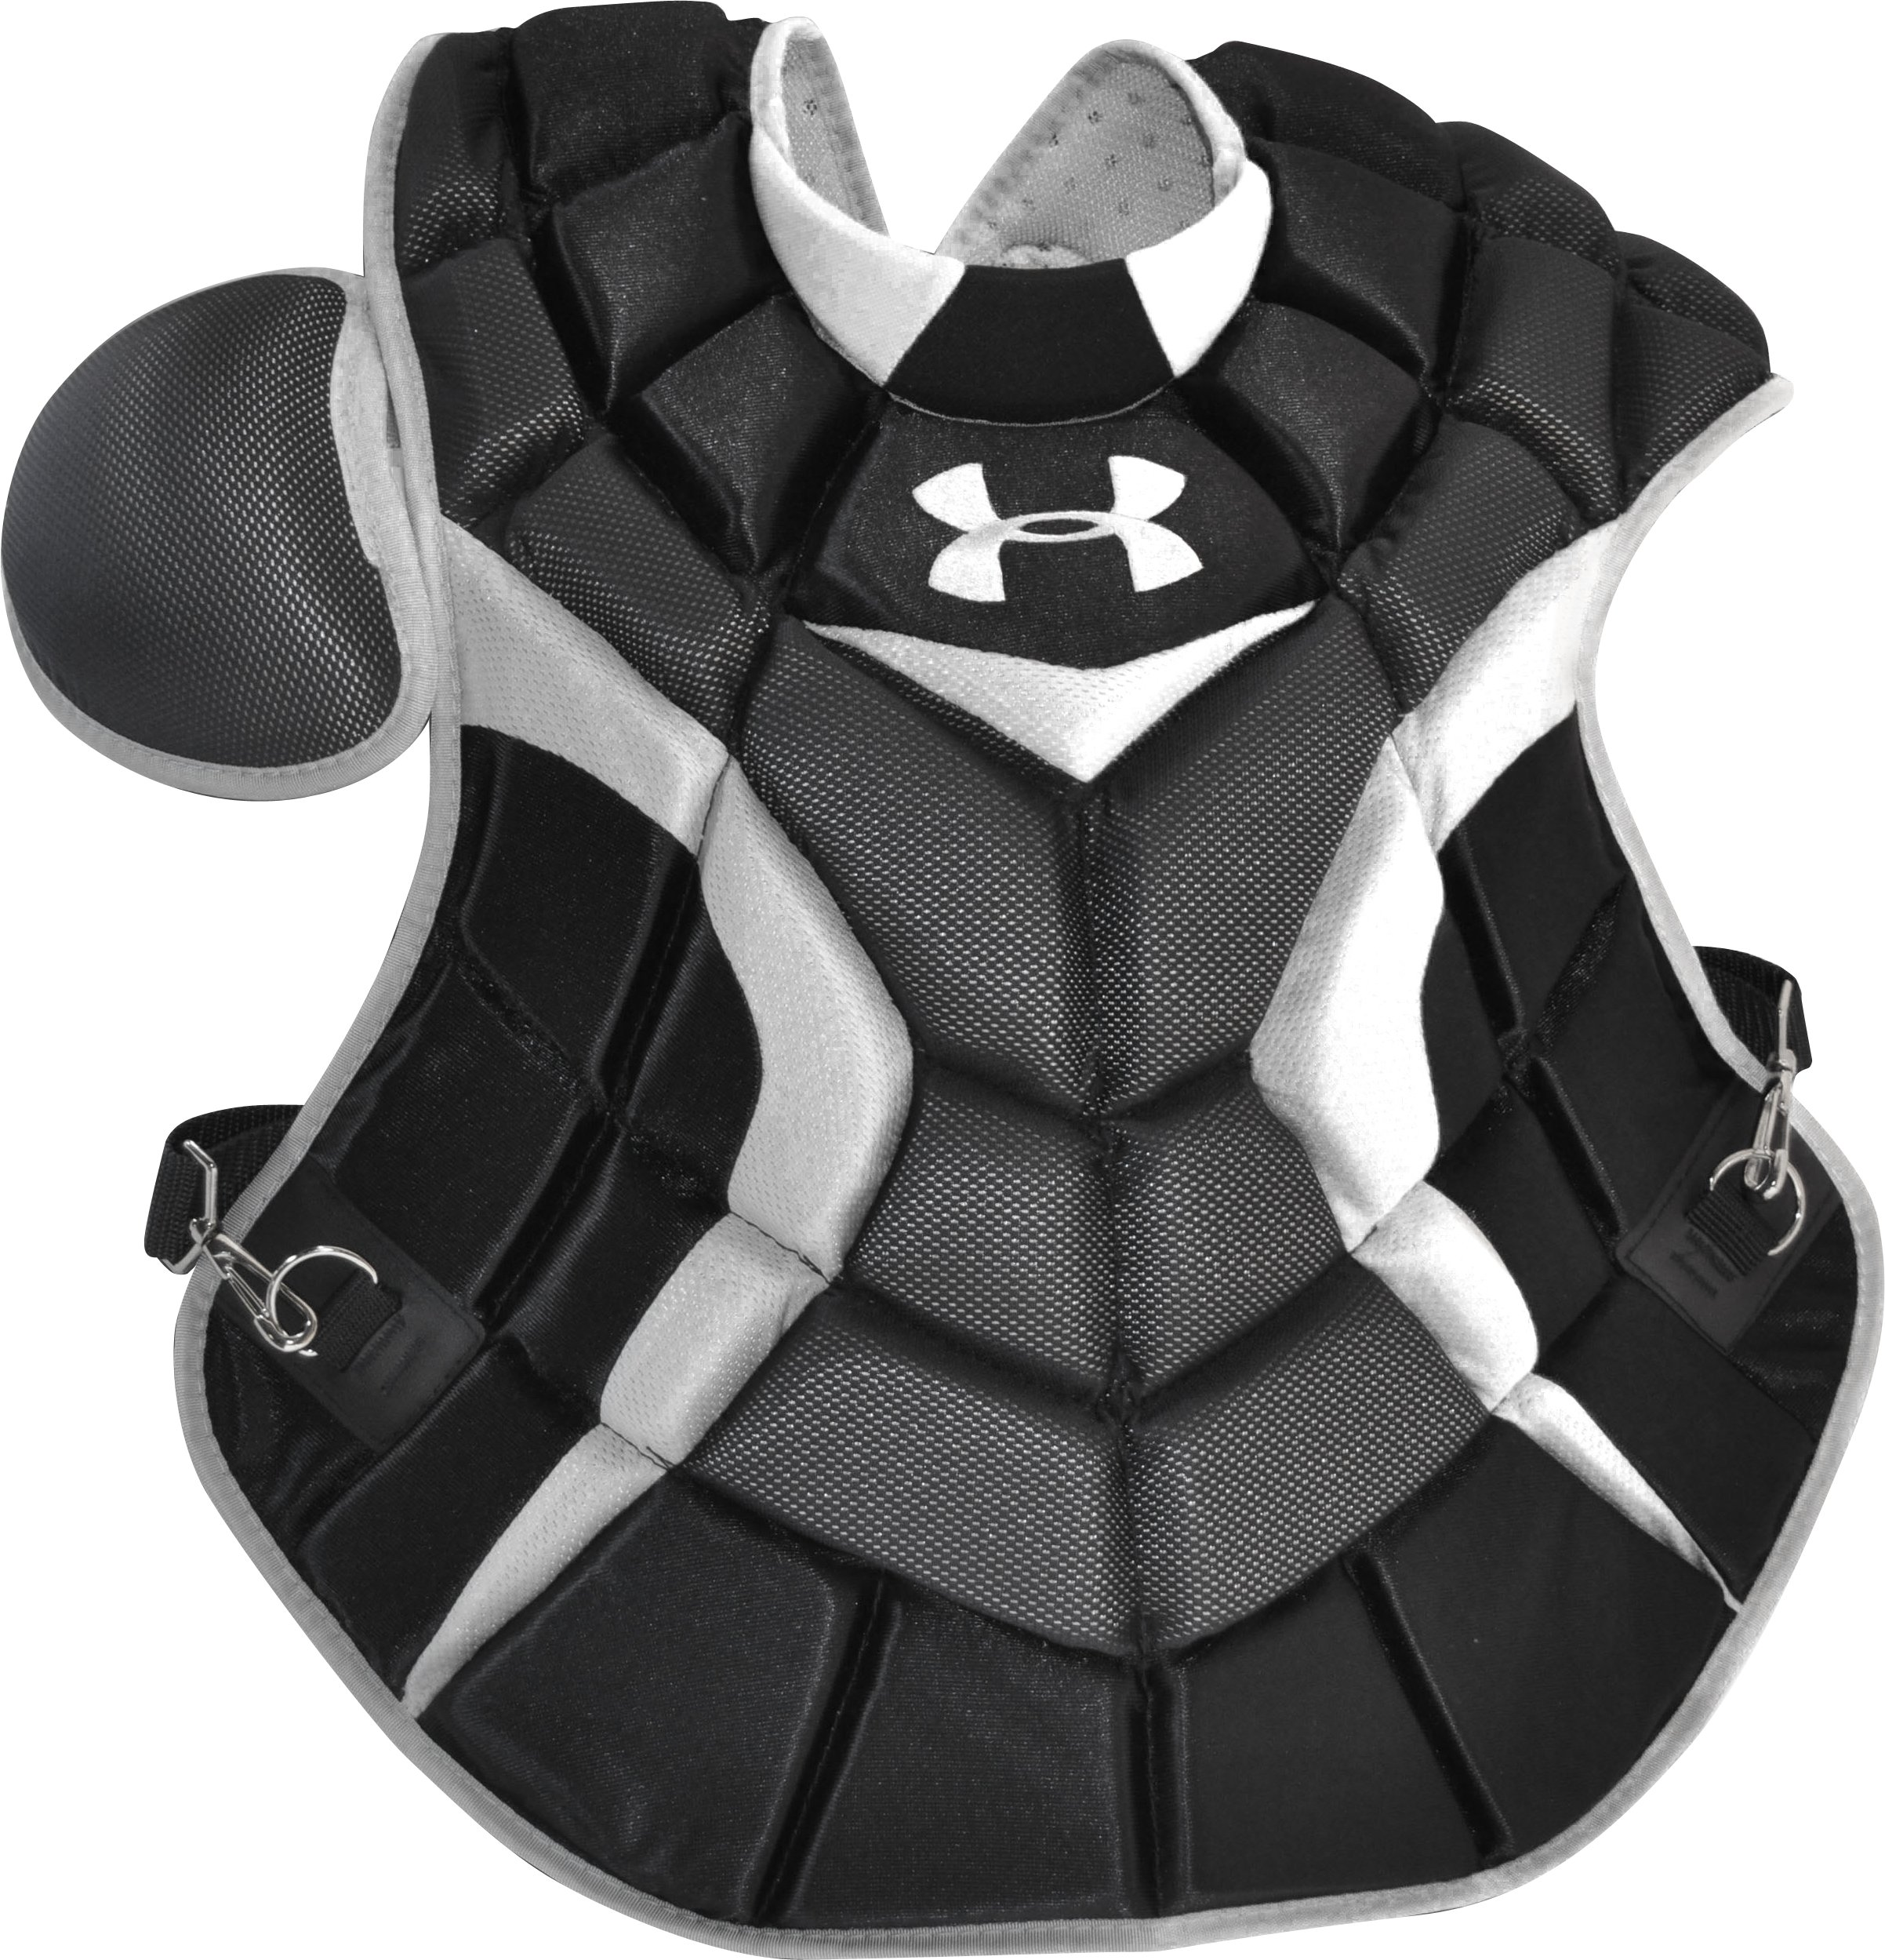 Men's Pro Catcher's Chest Protector, Black , undefined